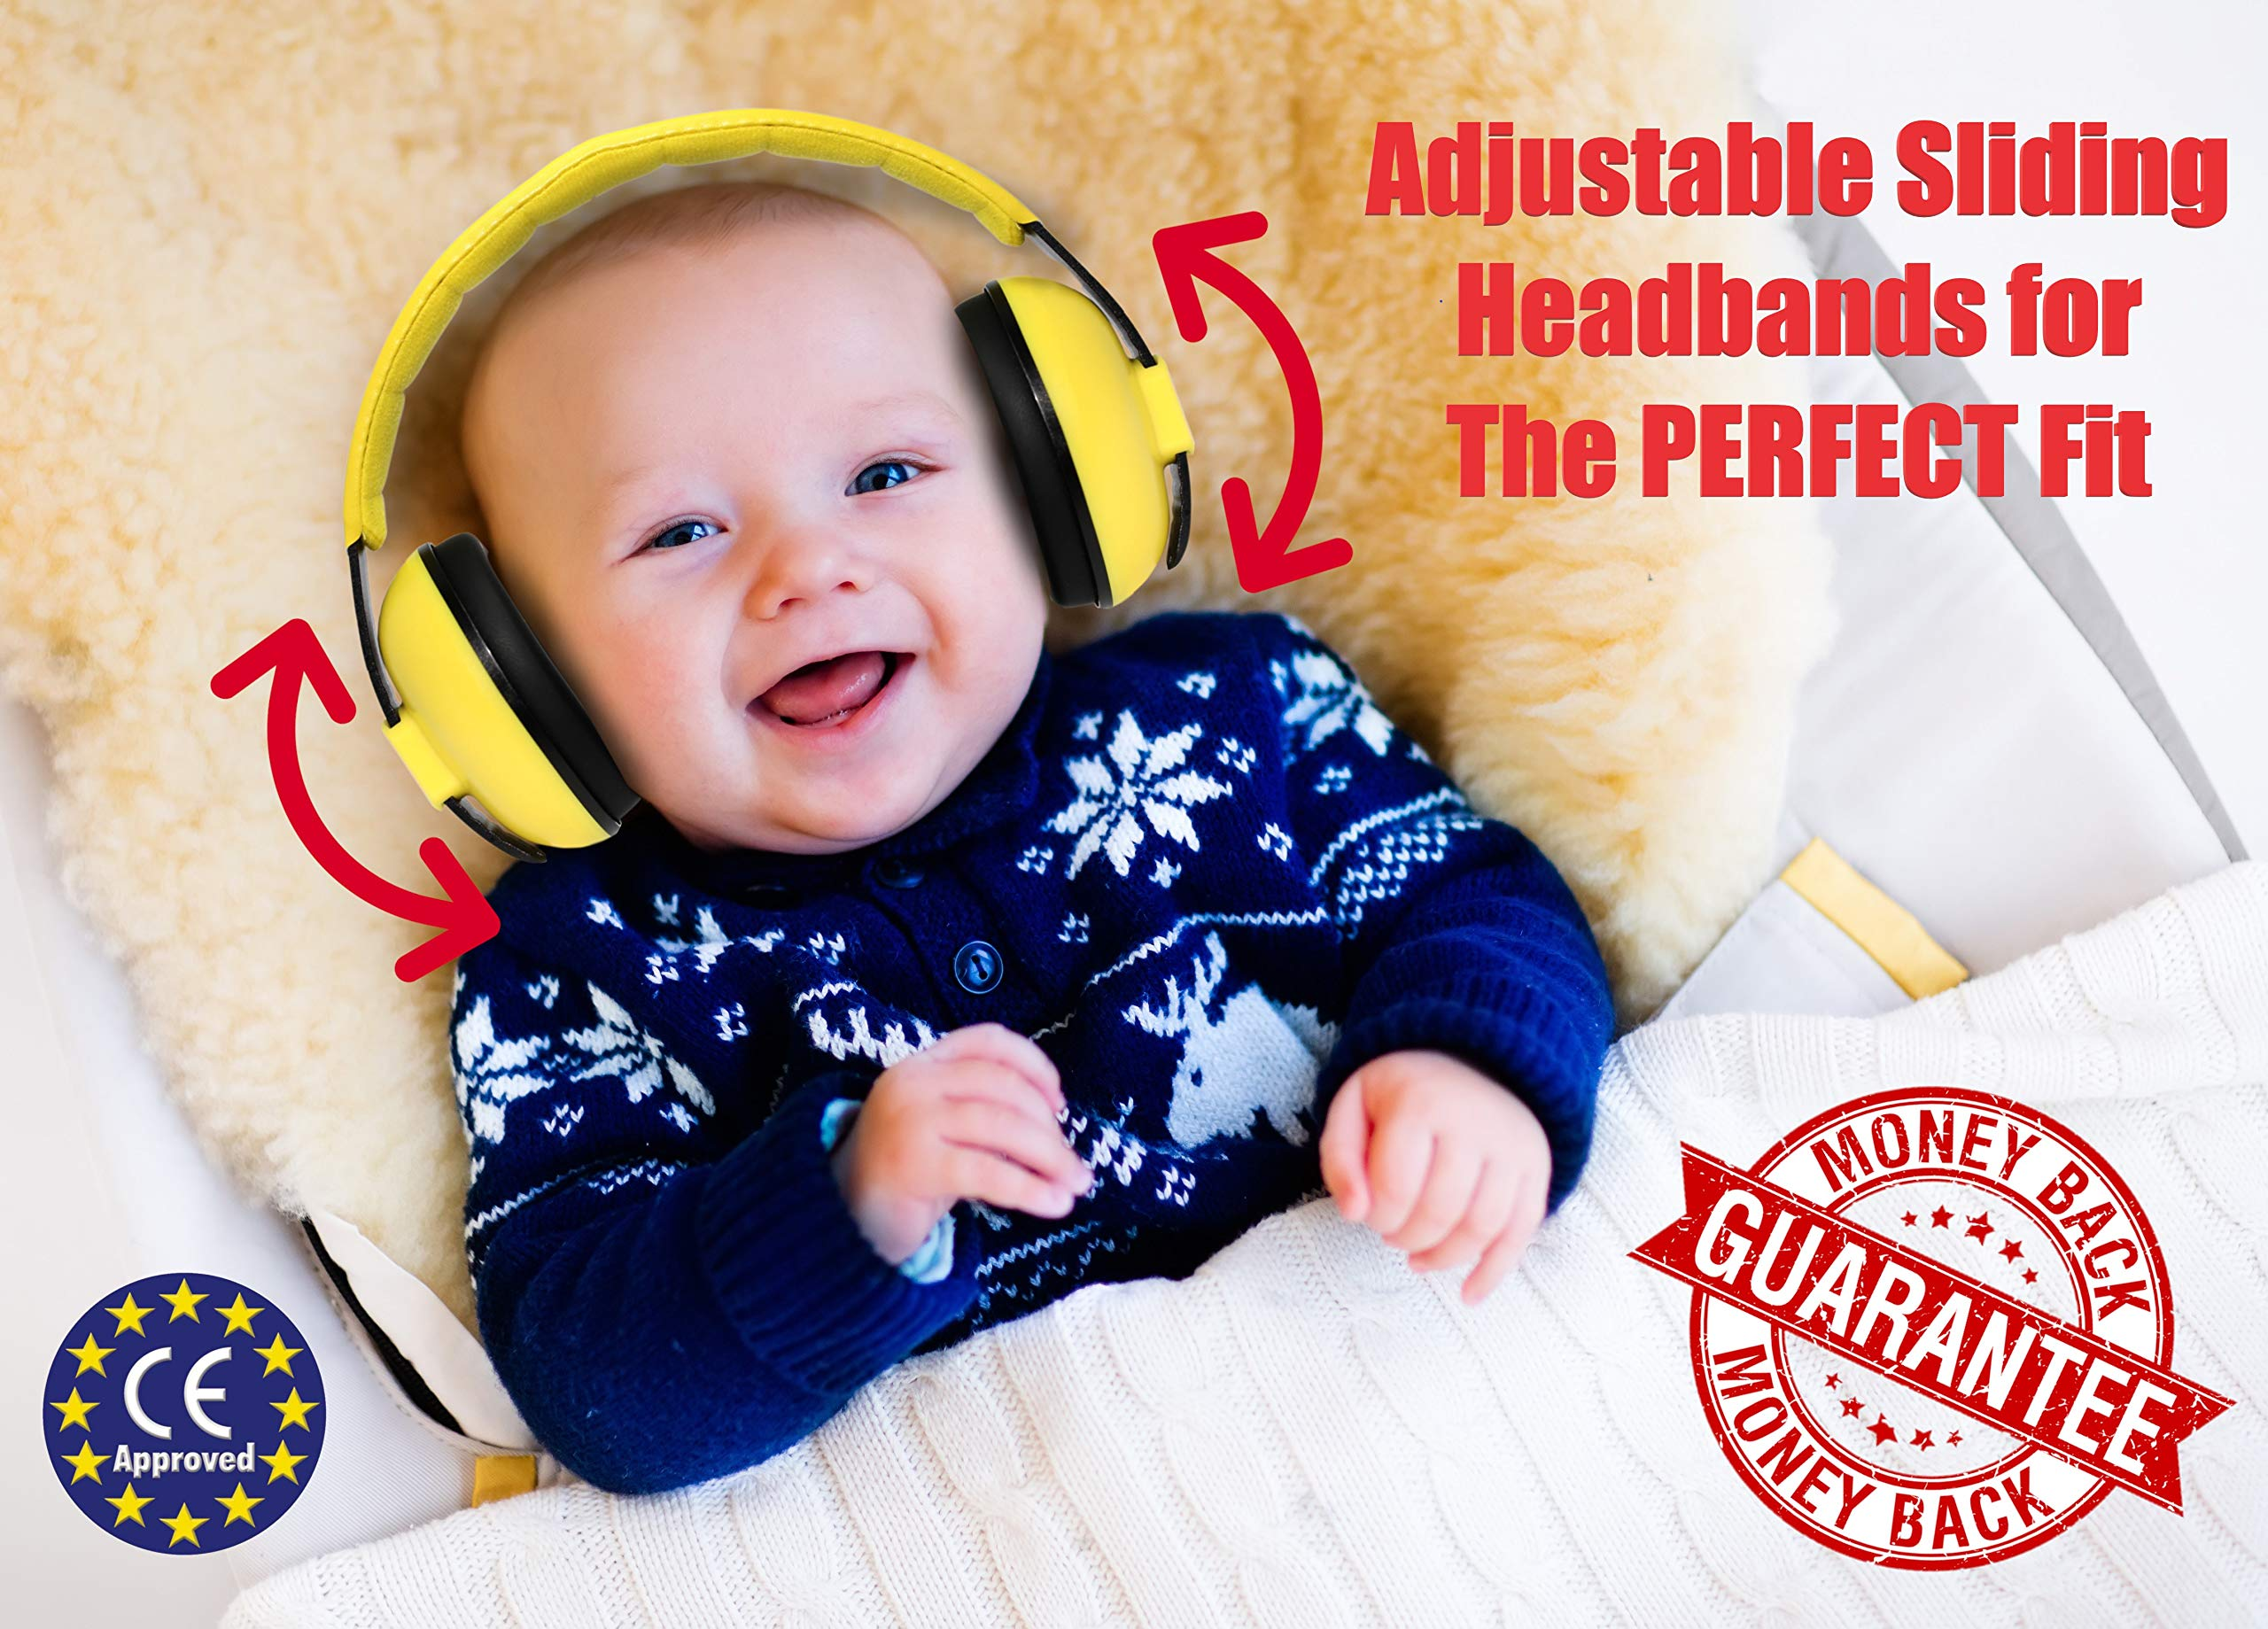 Noise Cancelling Baby Ear Protection Baby Earmuffs ~ Protect Infants and Kids Hearing with Safe, Sound Proof Ear Muffs ~ Comfort Fit + Bonus Travel Bag and Stickers by ROMS Baby (Yellow)